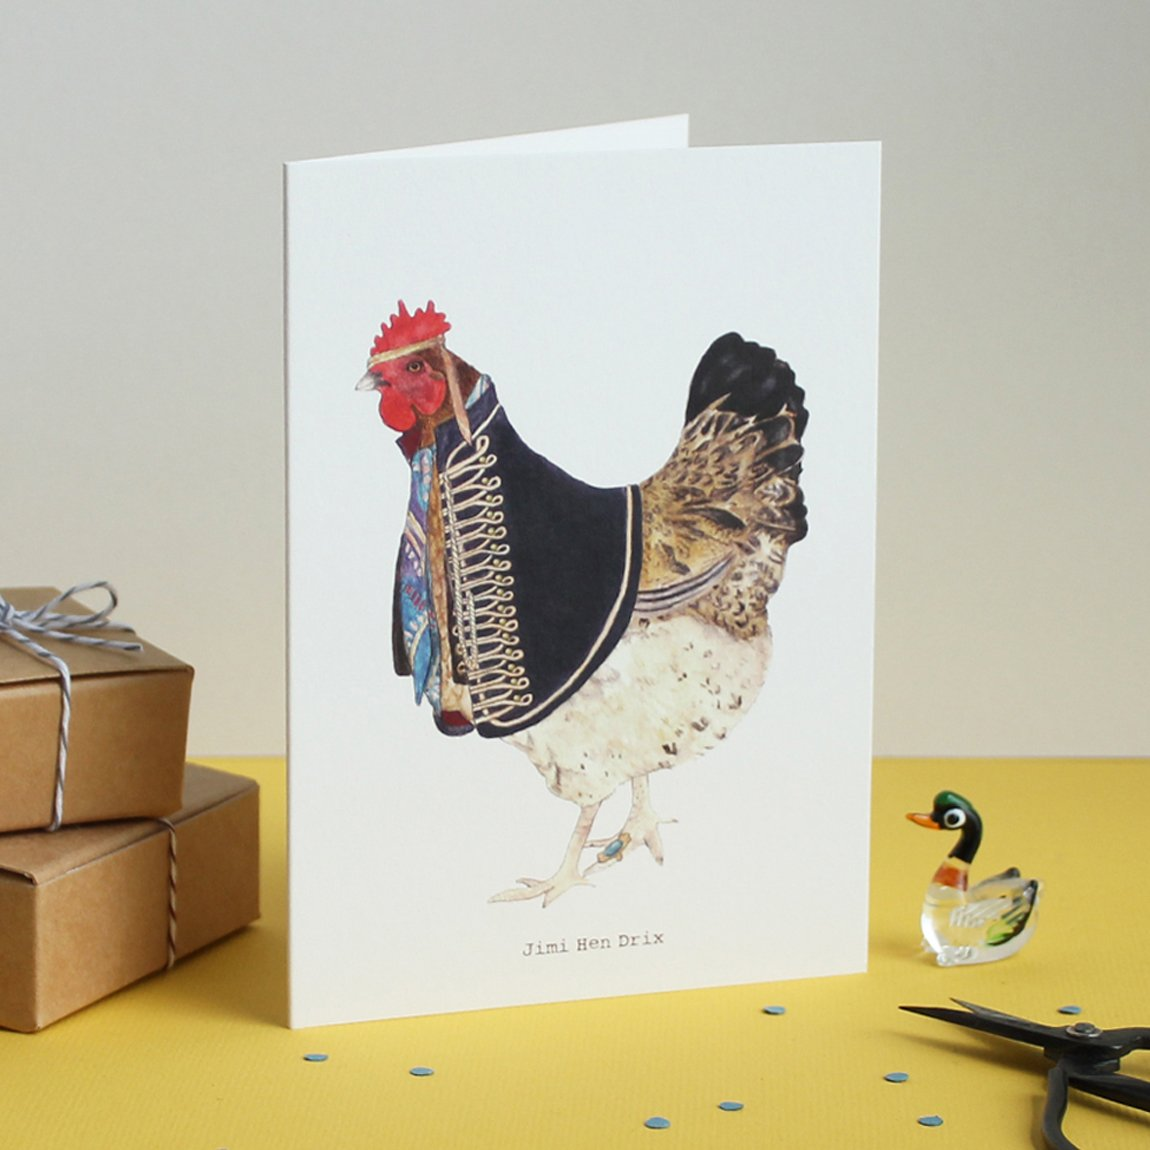 Mister Peebles Greeting Card 'Jimi Hen Drix'